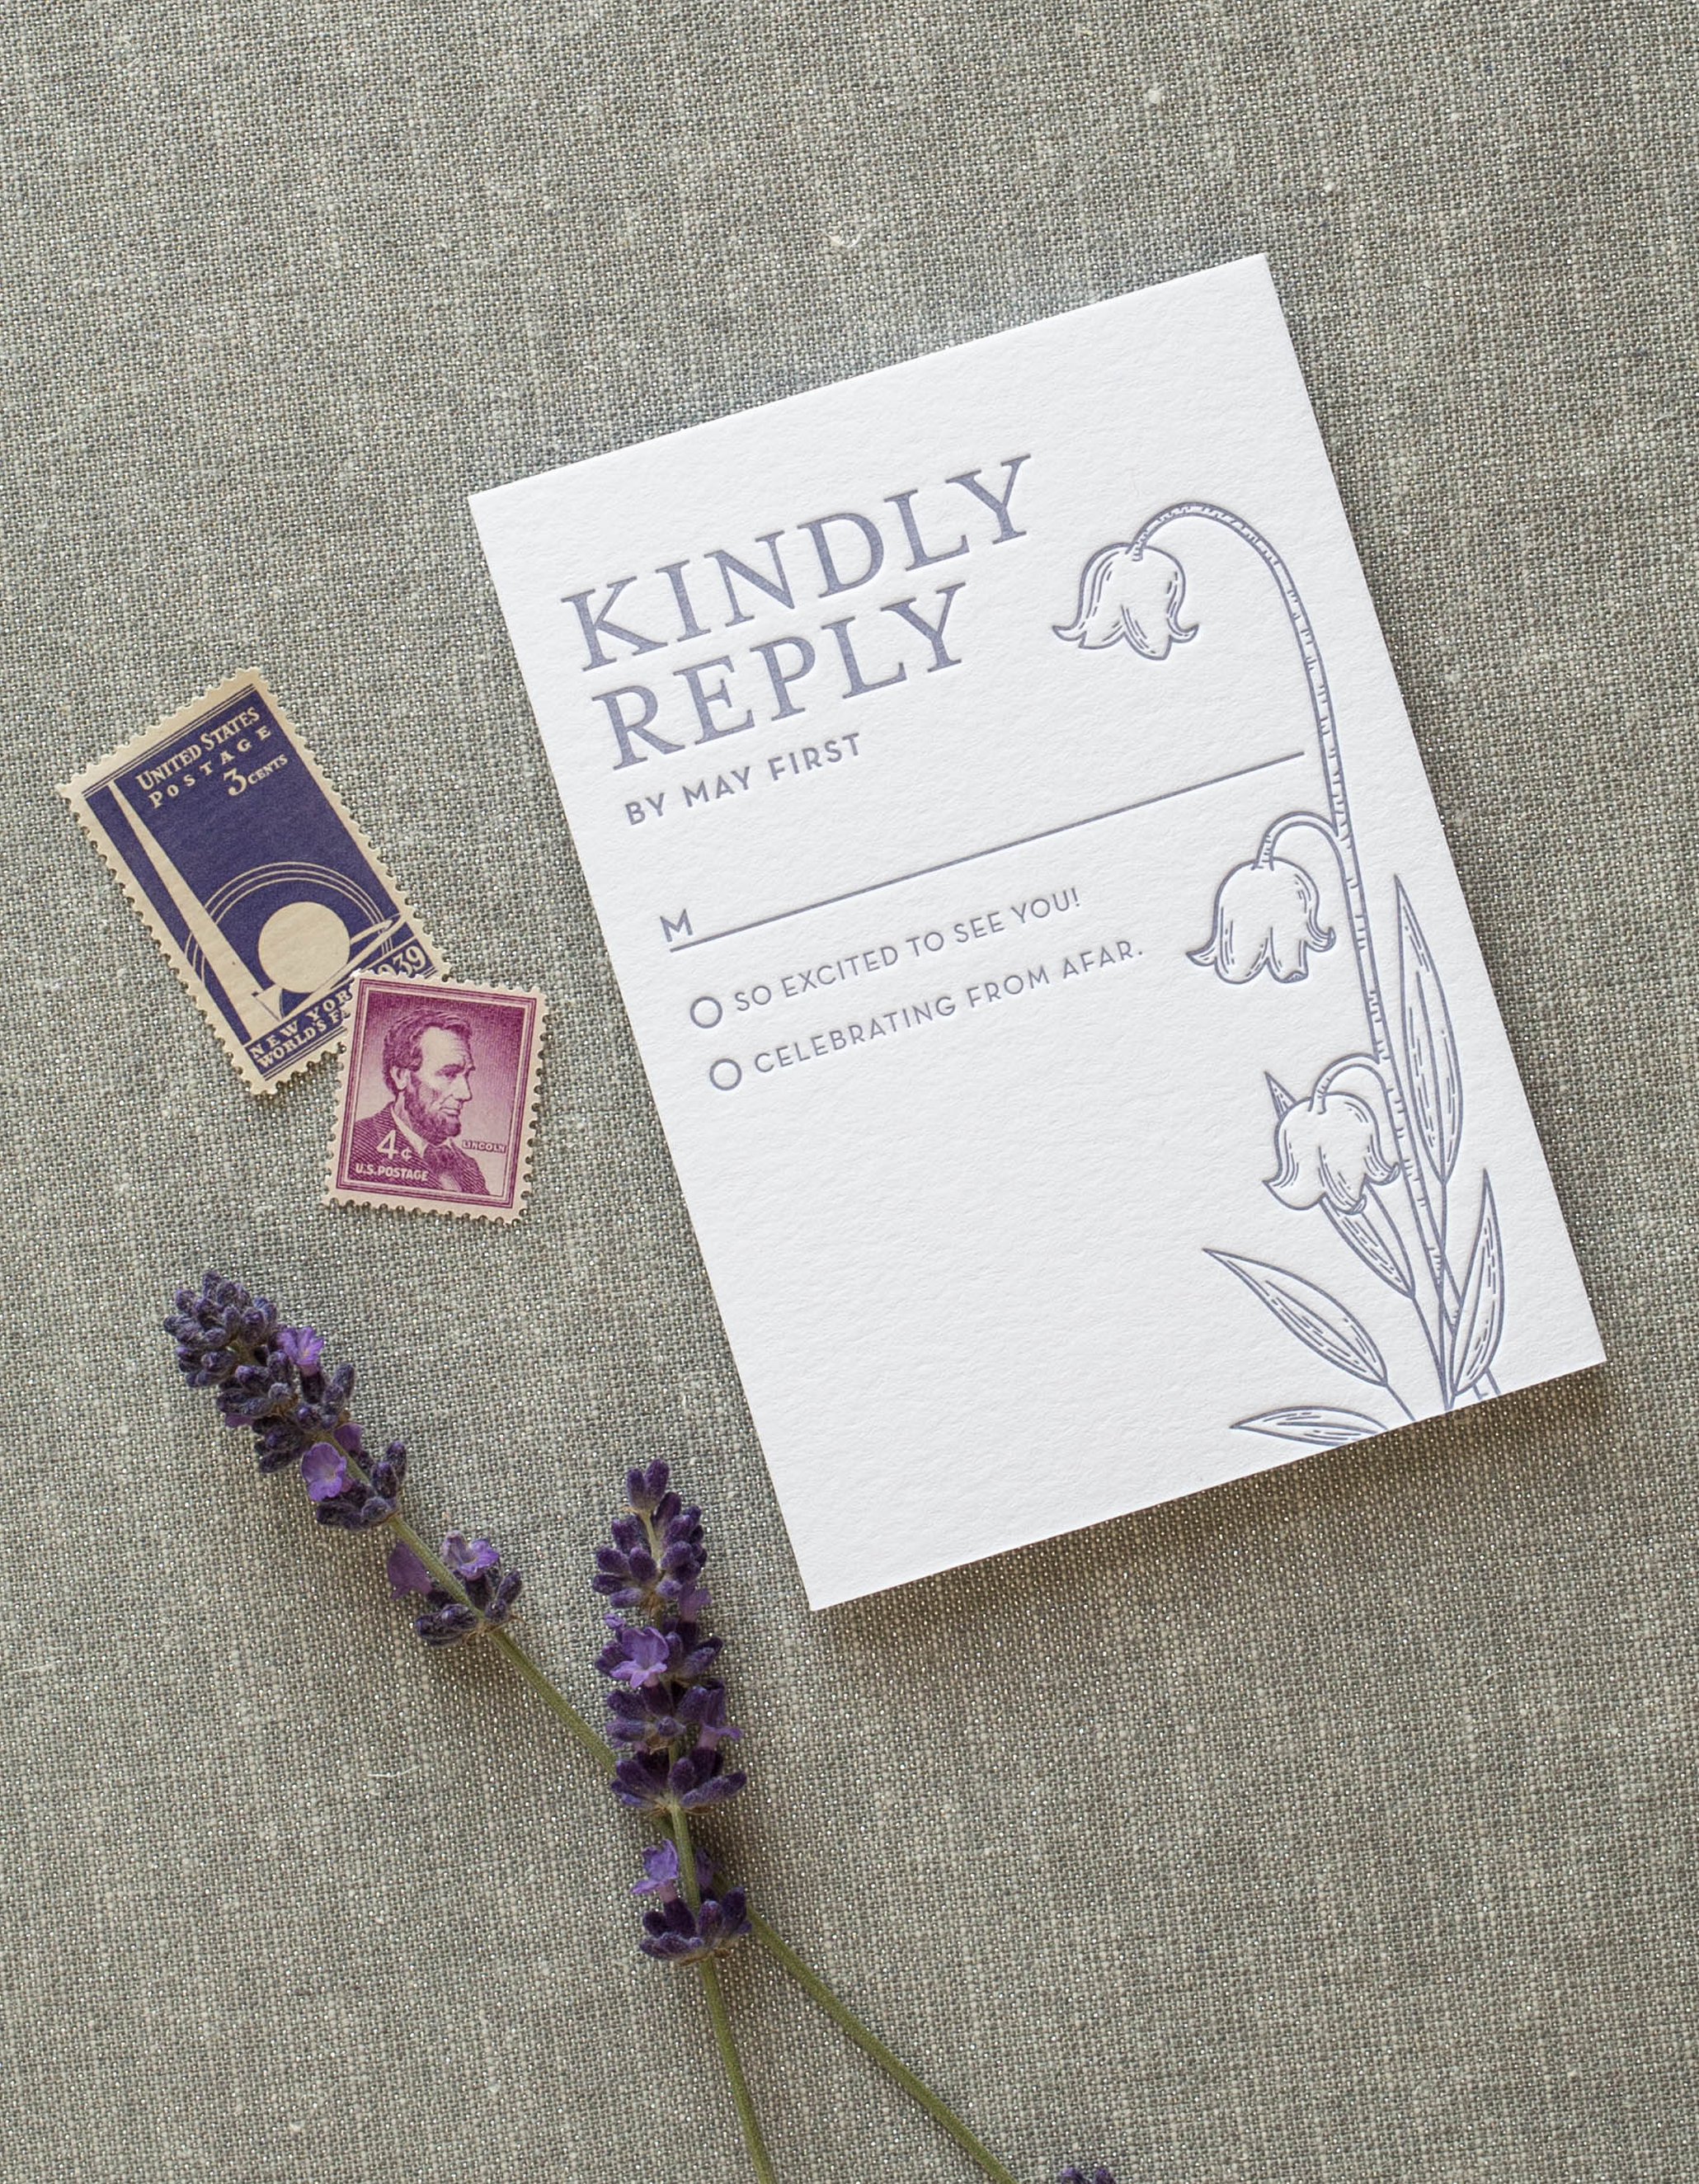 modern unique cool wedding invitations, custom designed and letterpress printed, inspired by flowers and nature, romantic